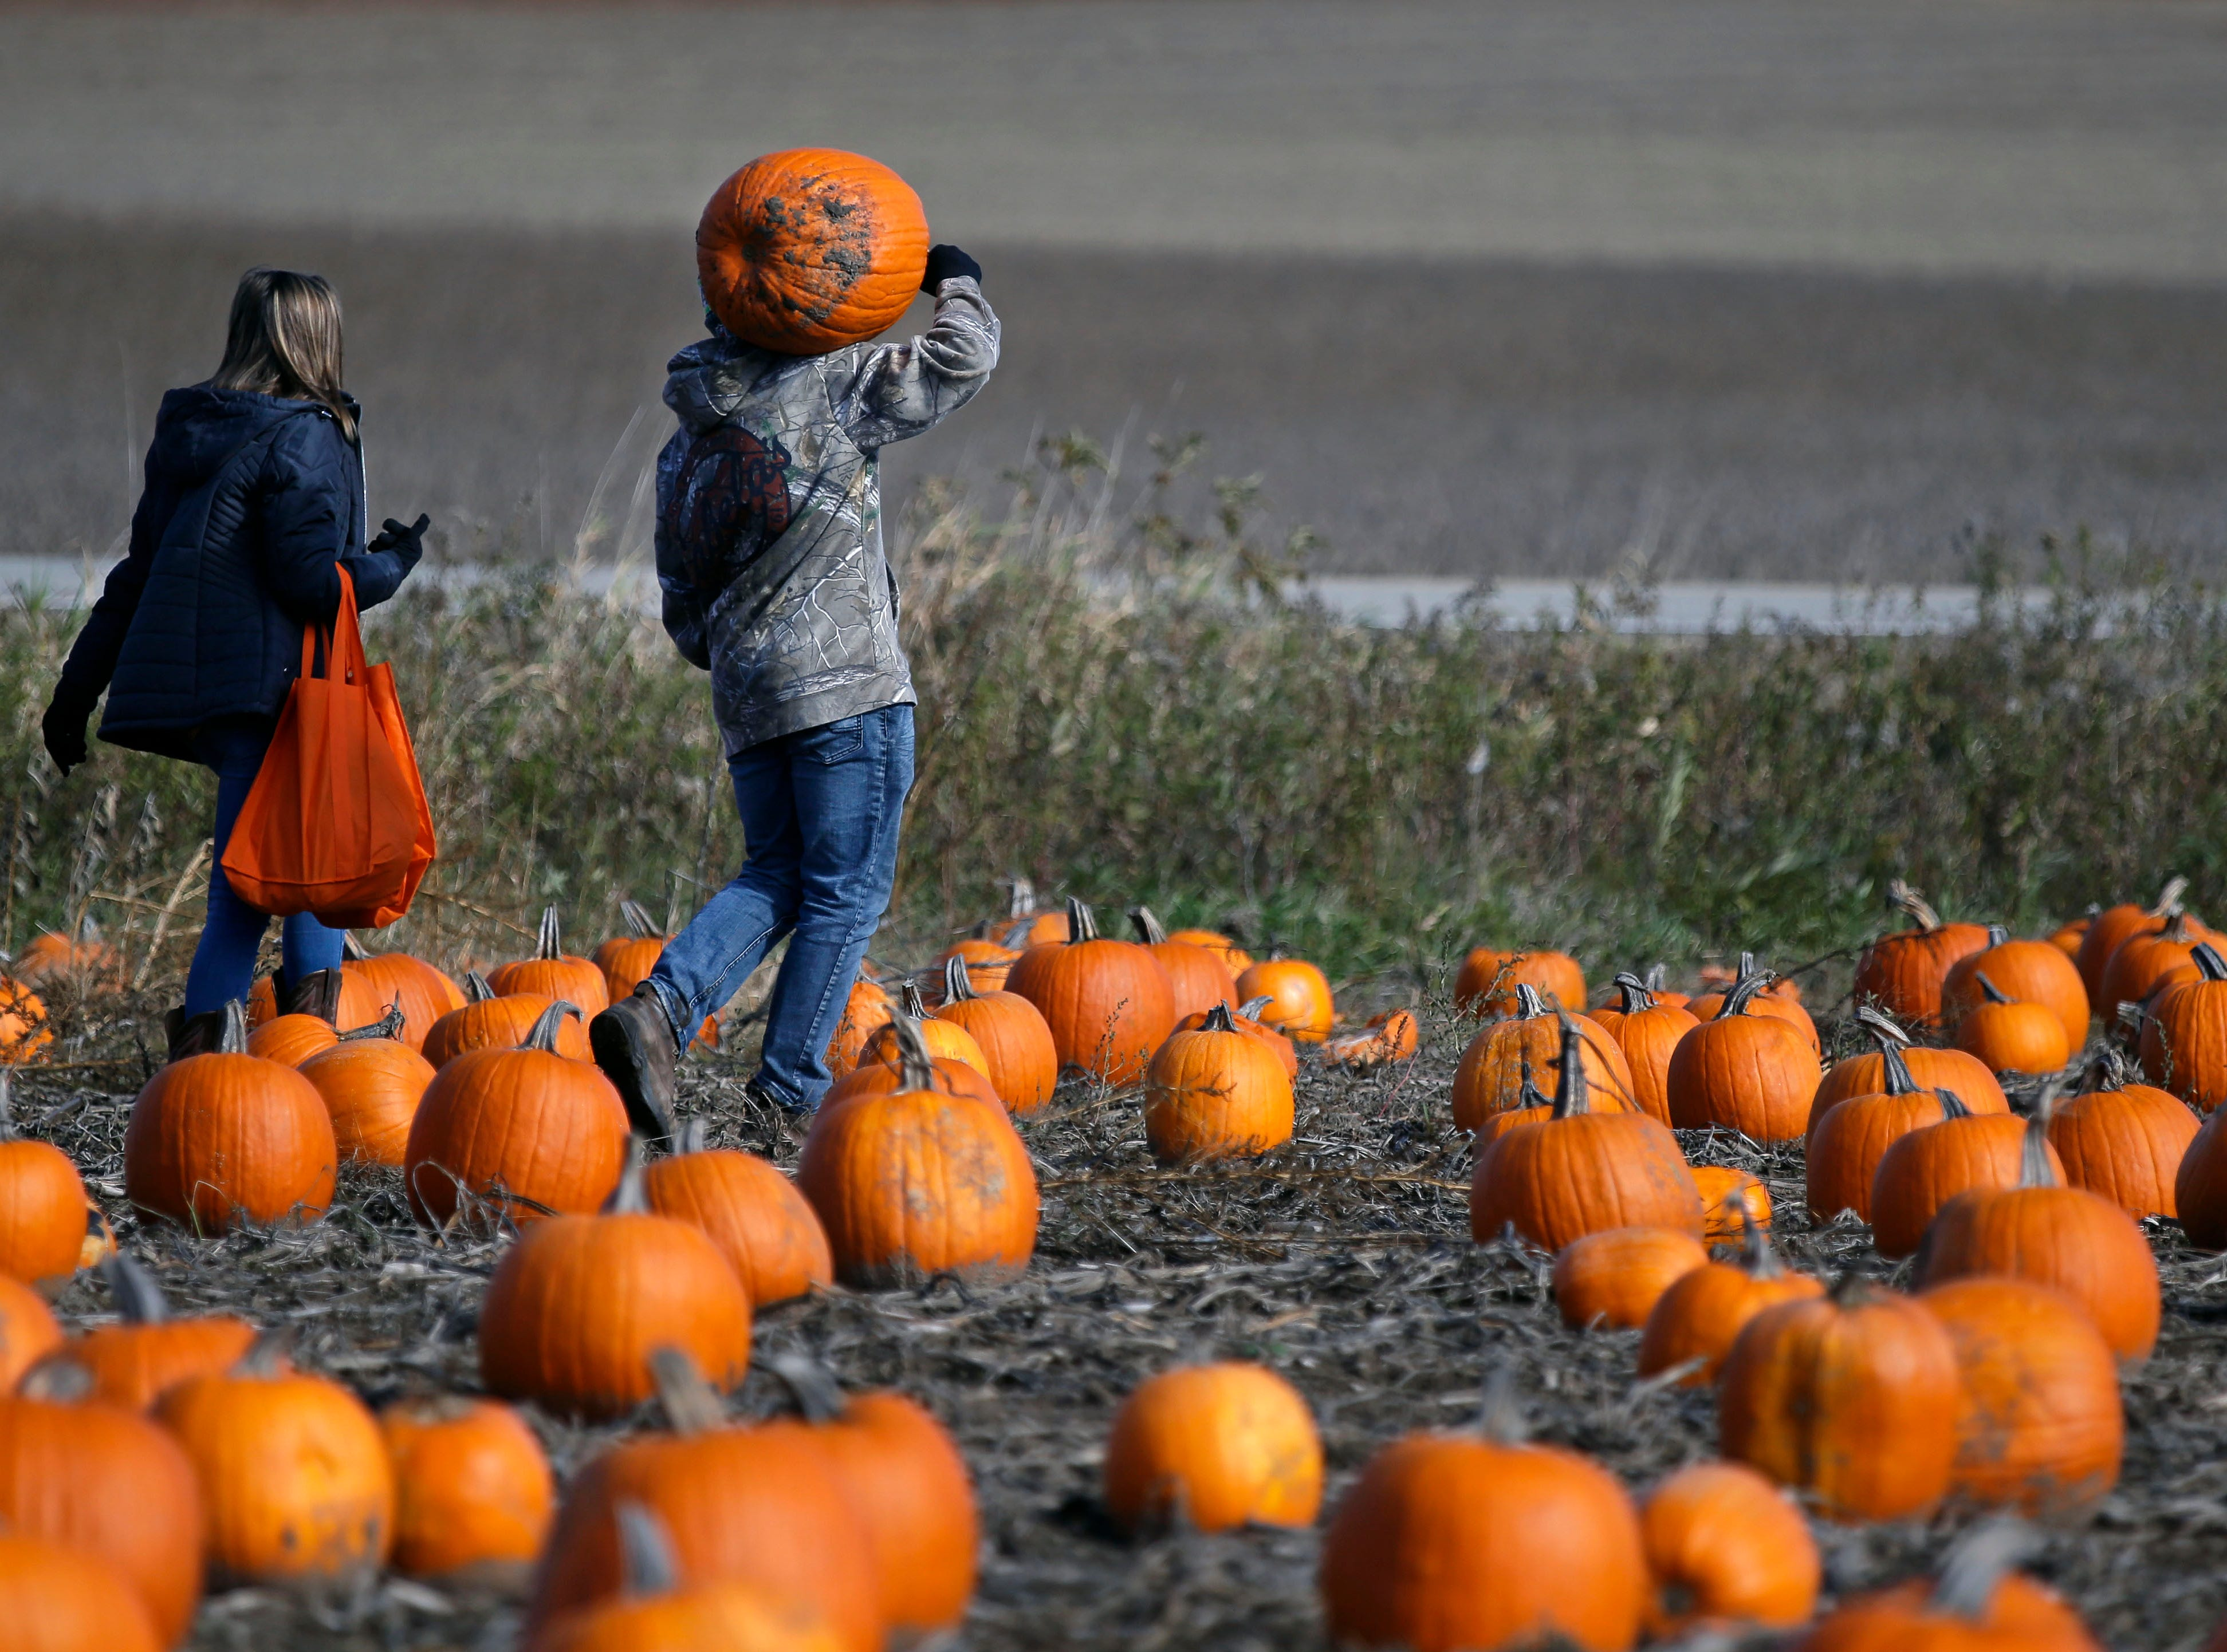 Paige Gregor and Ben Corsi of De Pere make their way through a pumpkin patch Sunday, October 21, 2018, at Cuff Farms in Hortonville, Wis.